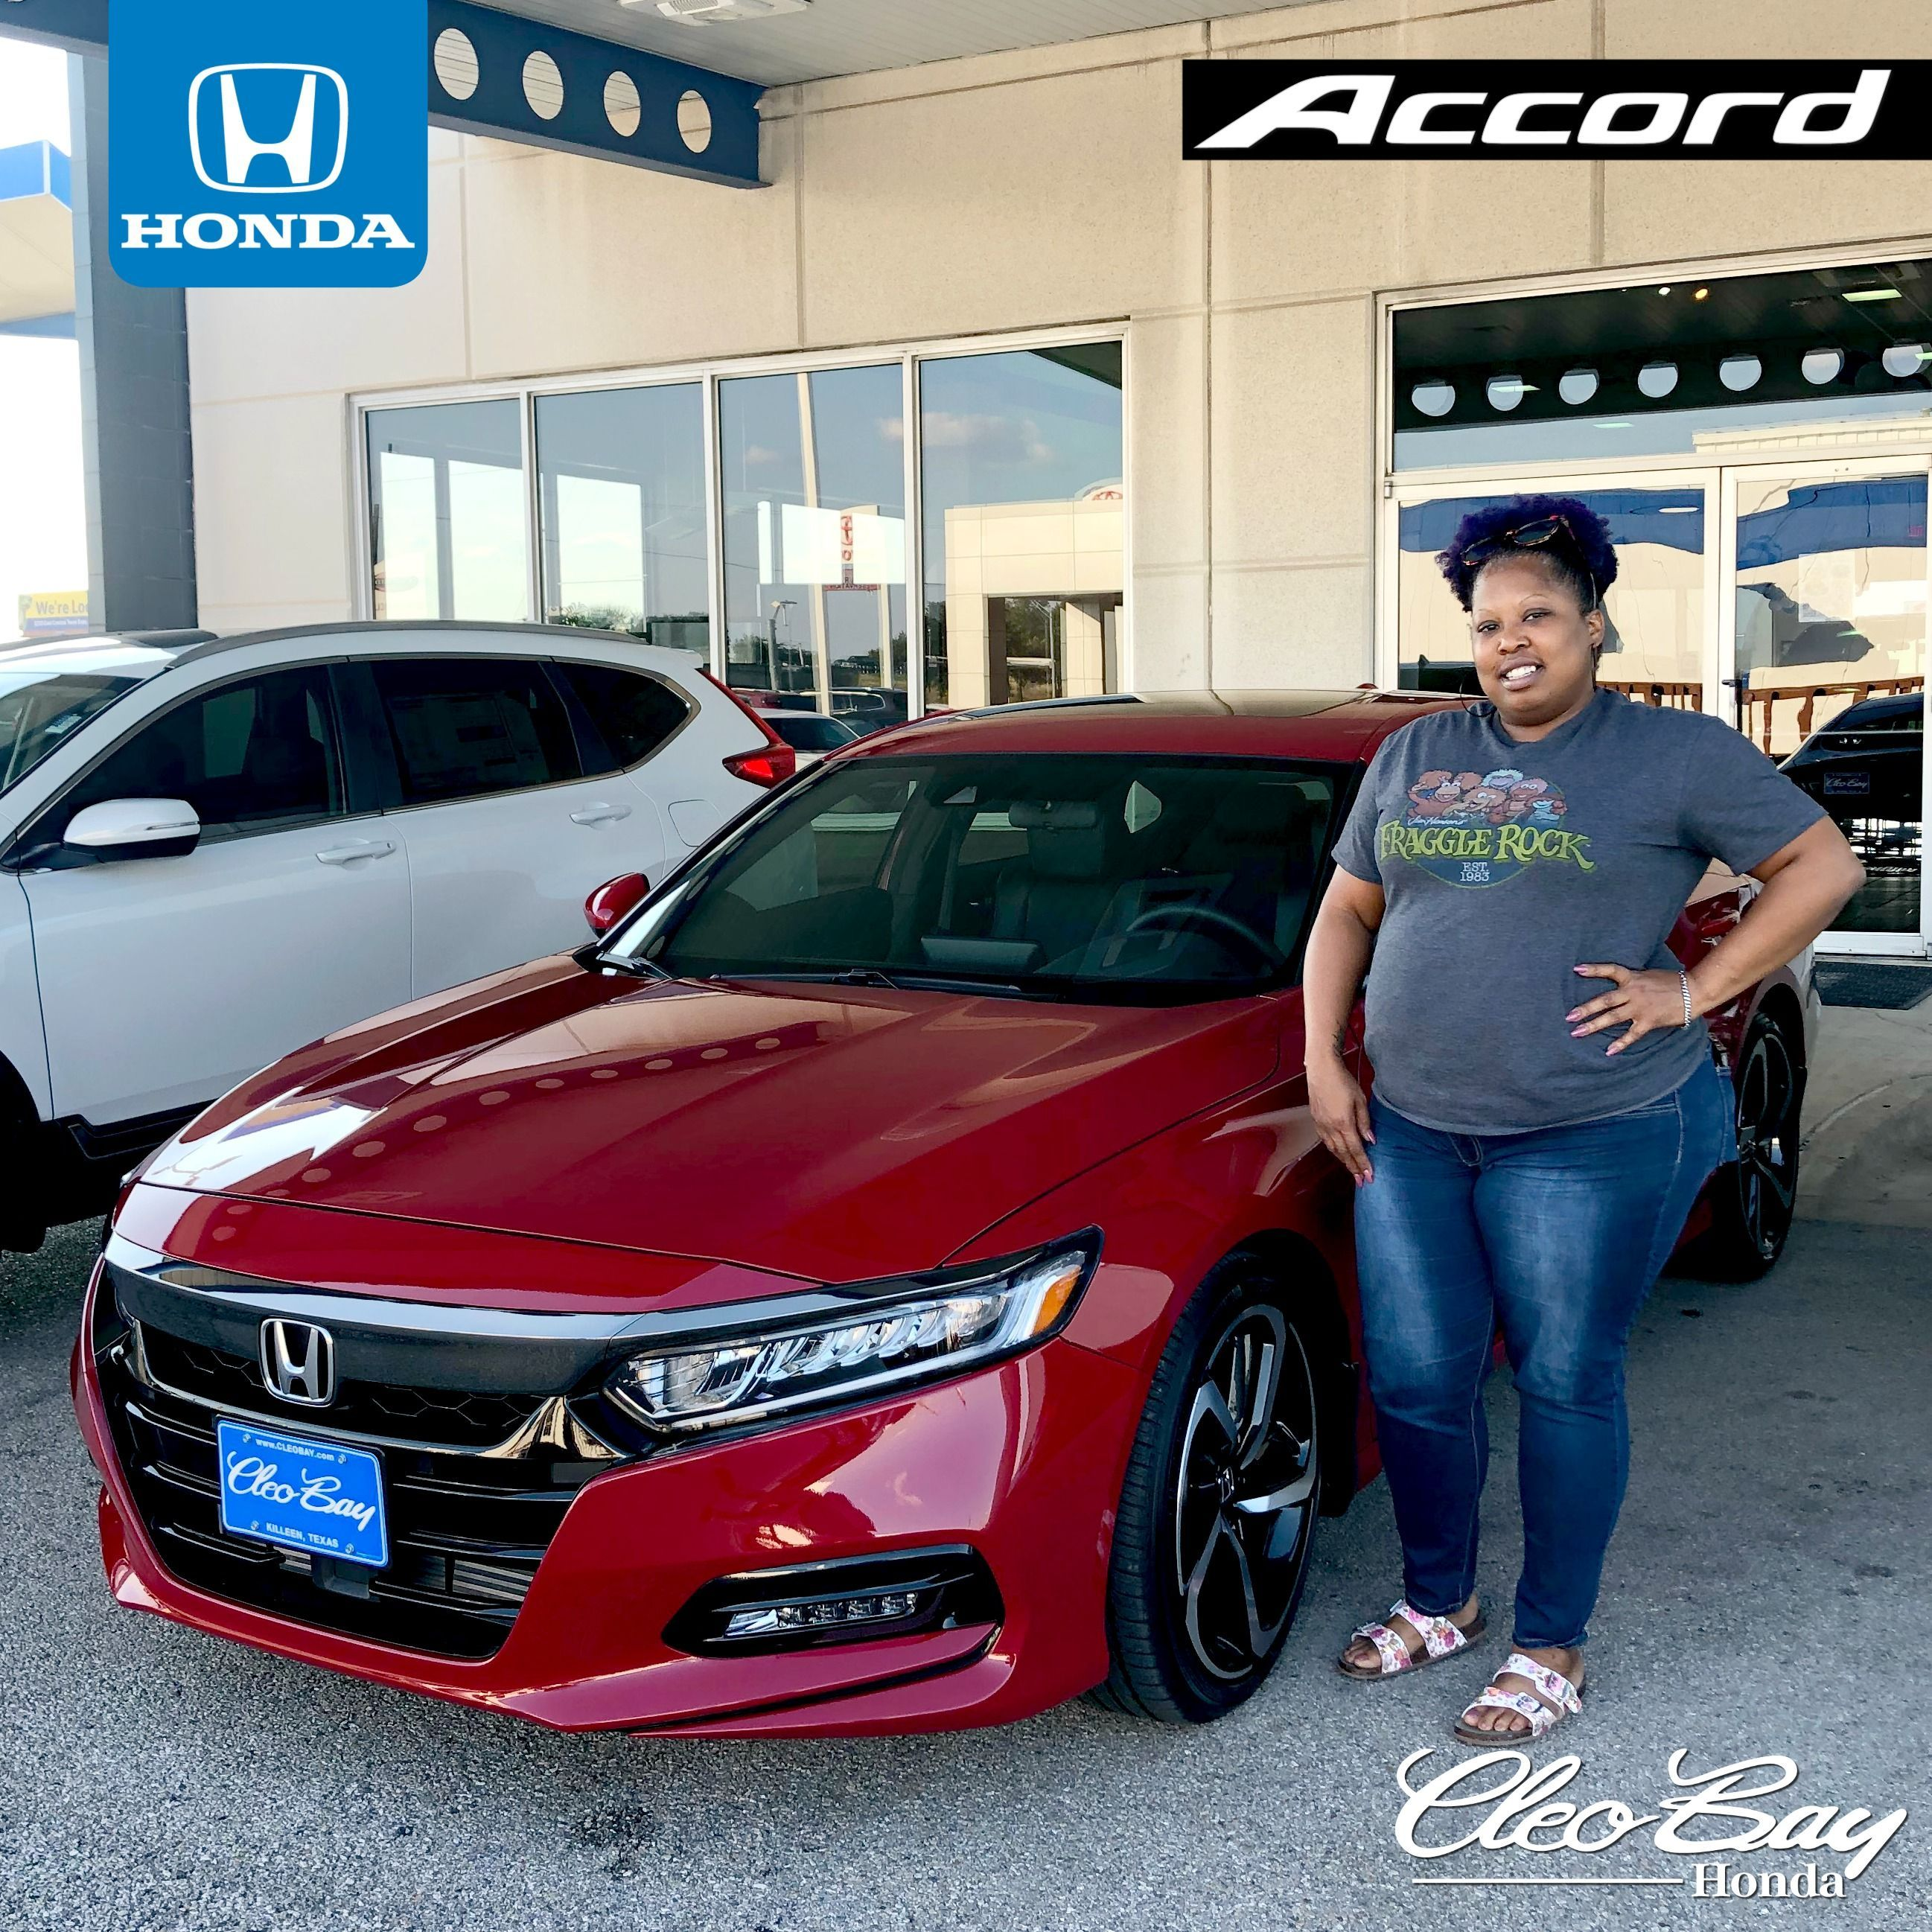 Congratulations Shundra on your recent purchase of a NEW